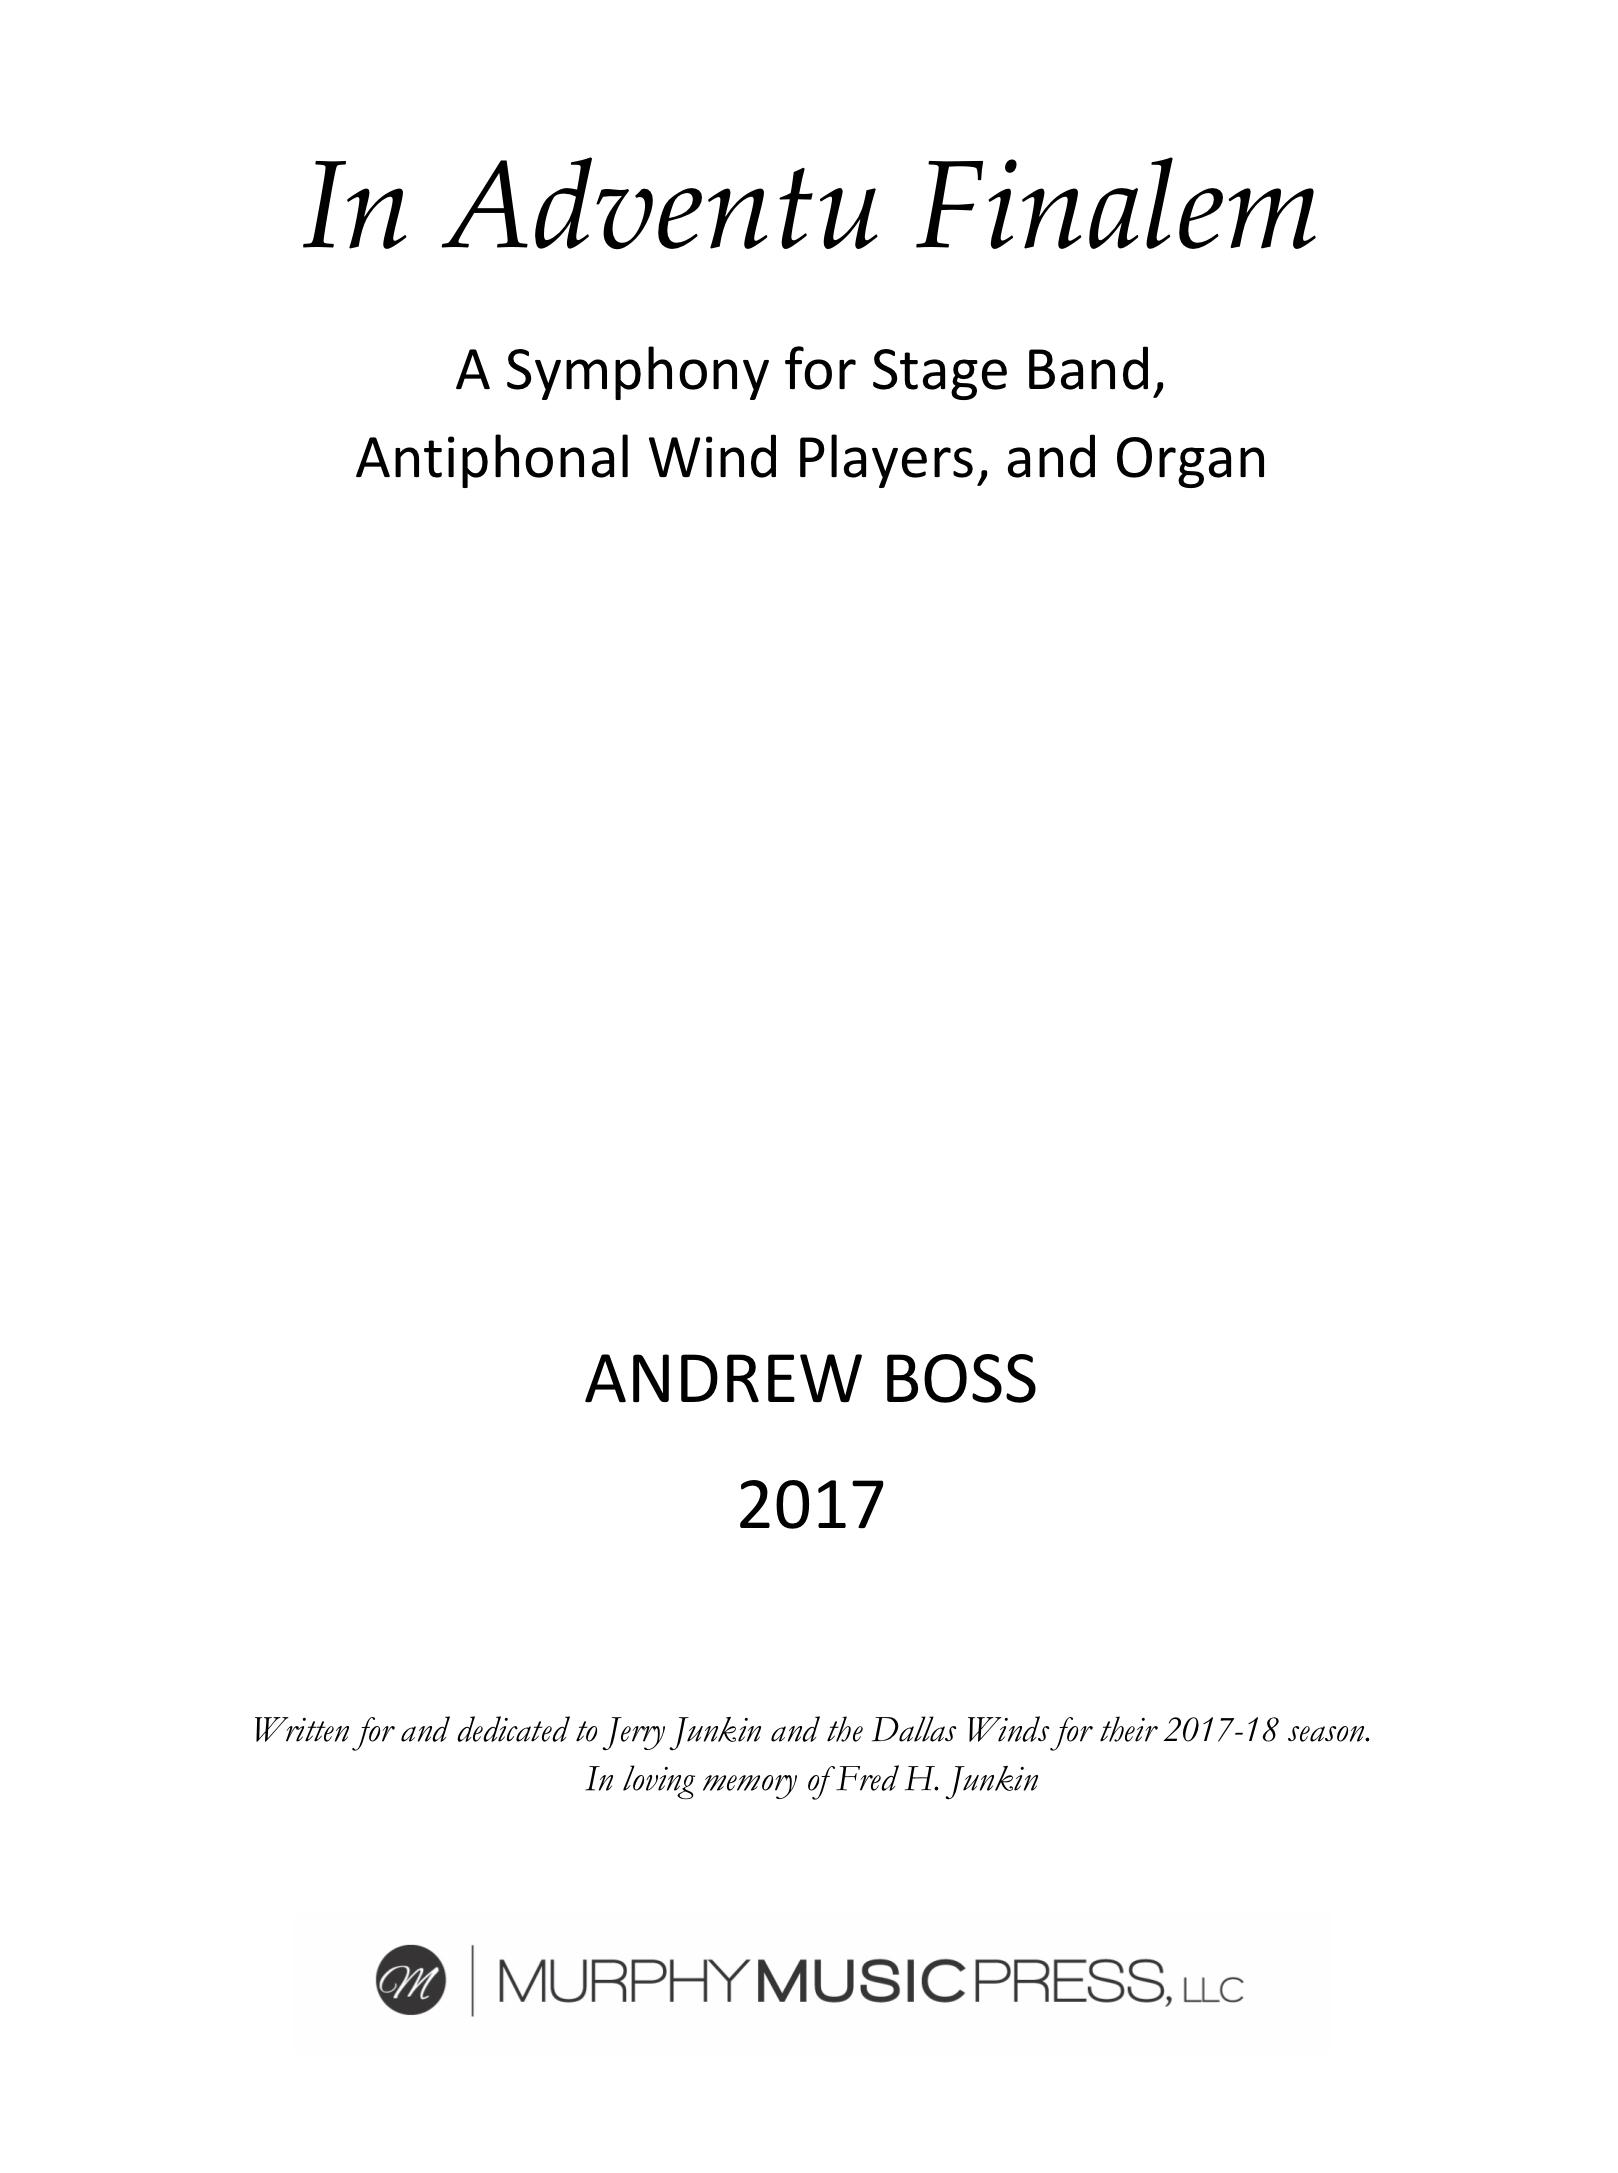 In Adventu Finalem (First Movement Rental Only) by Andrew Boss